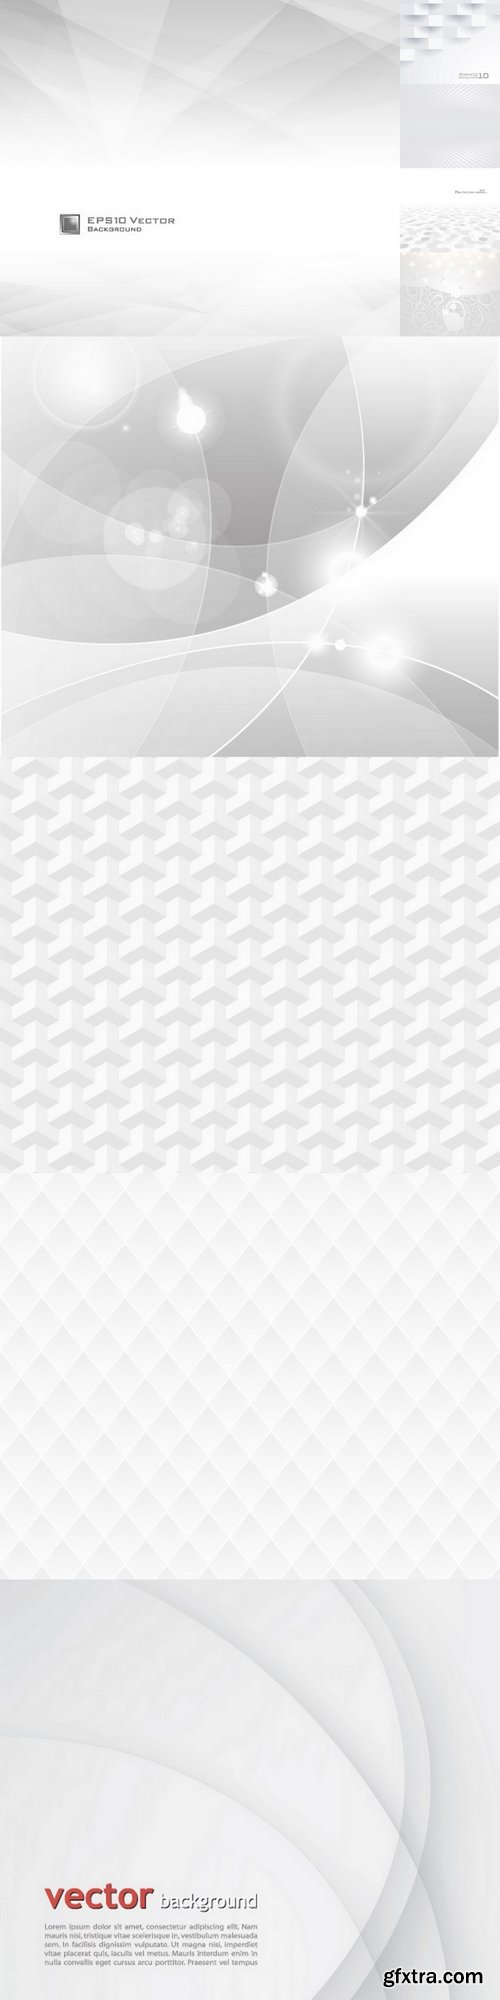 White & grey abstract background